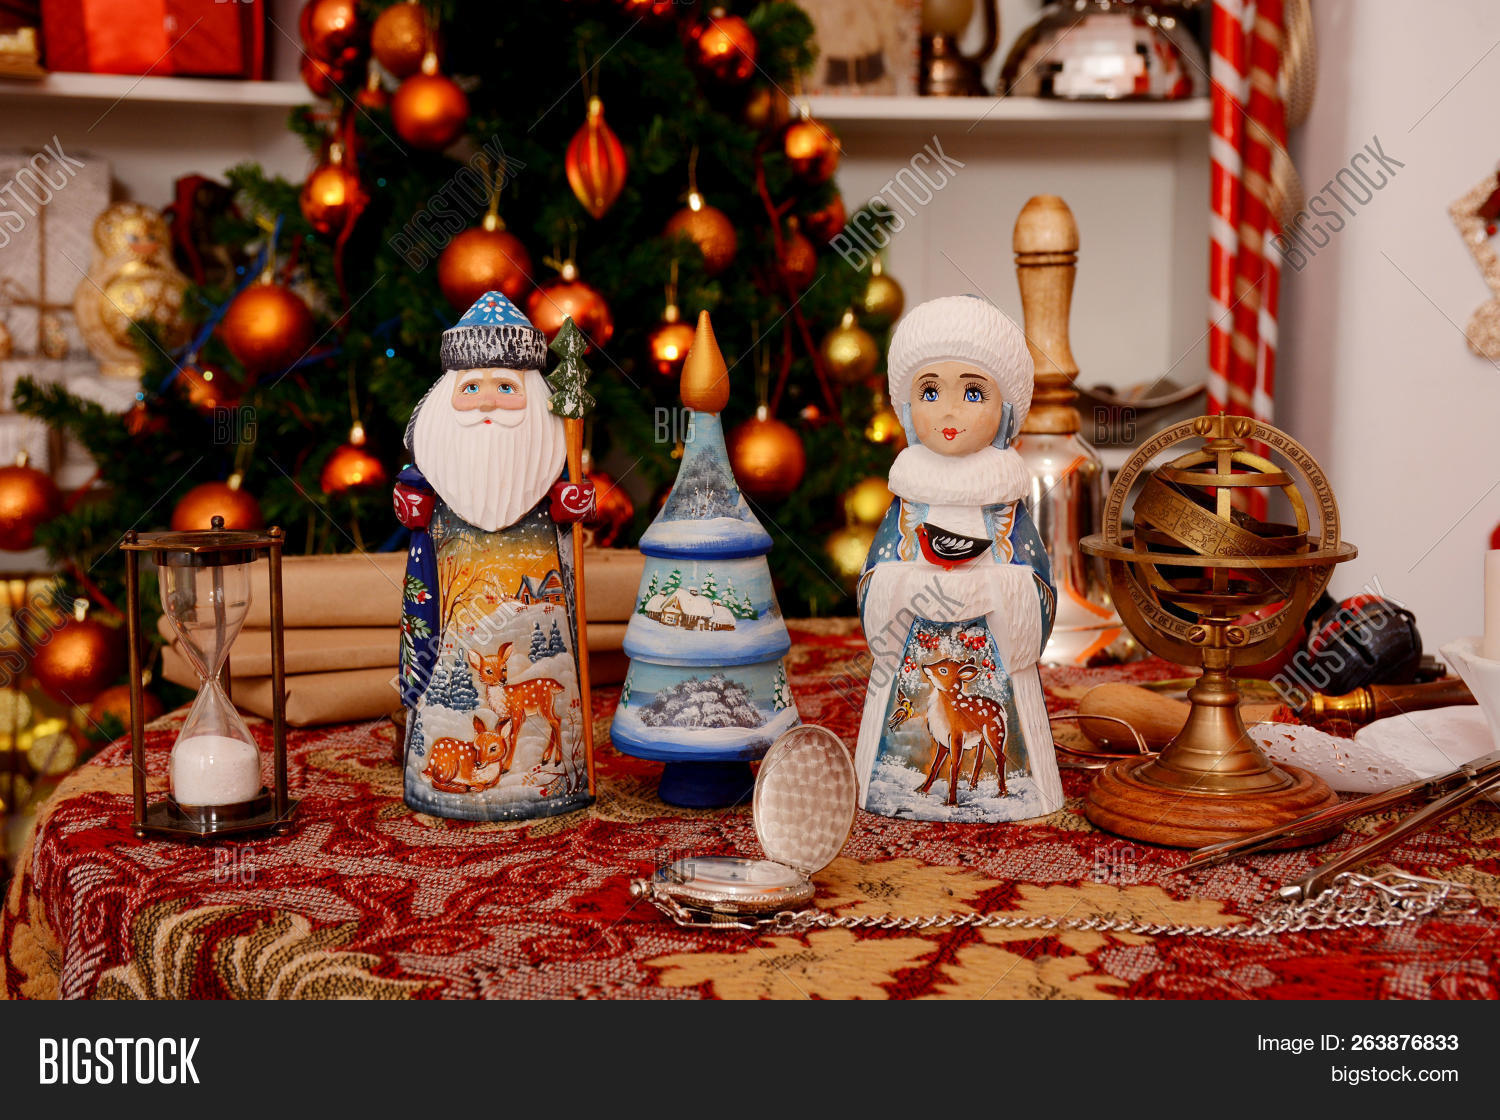 Russian Christmas.Russian Christmas Image Photo Free Trial Bigstock